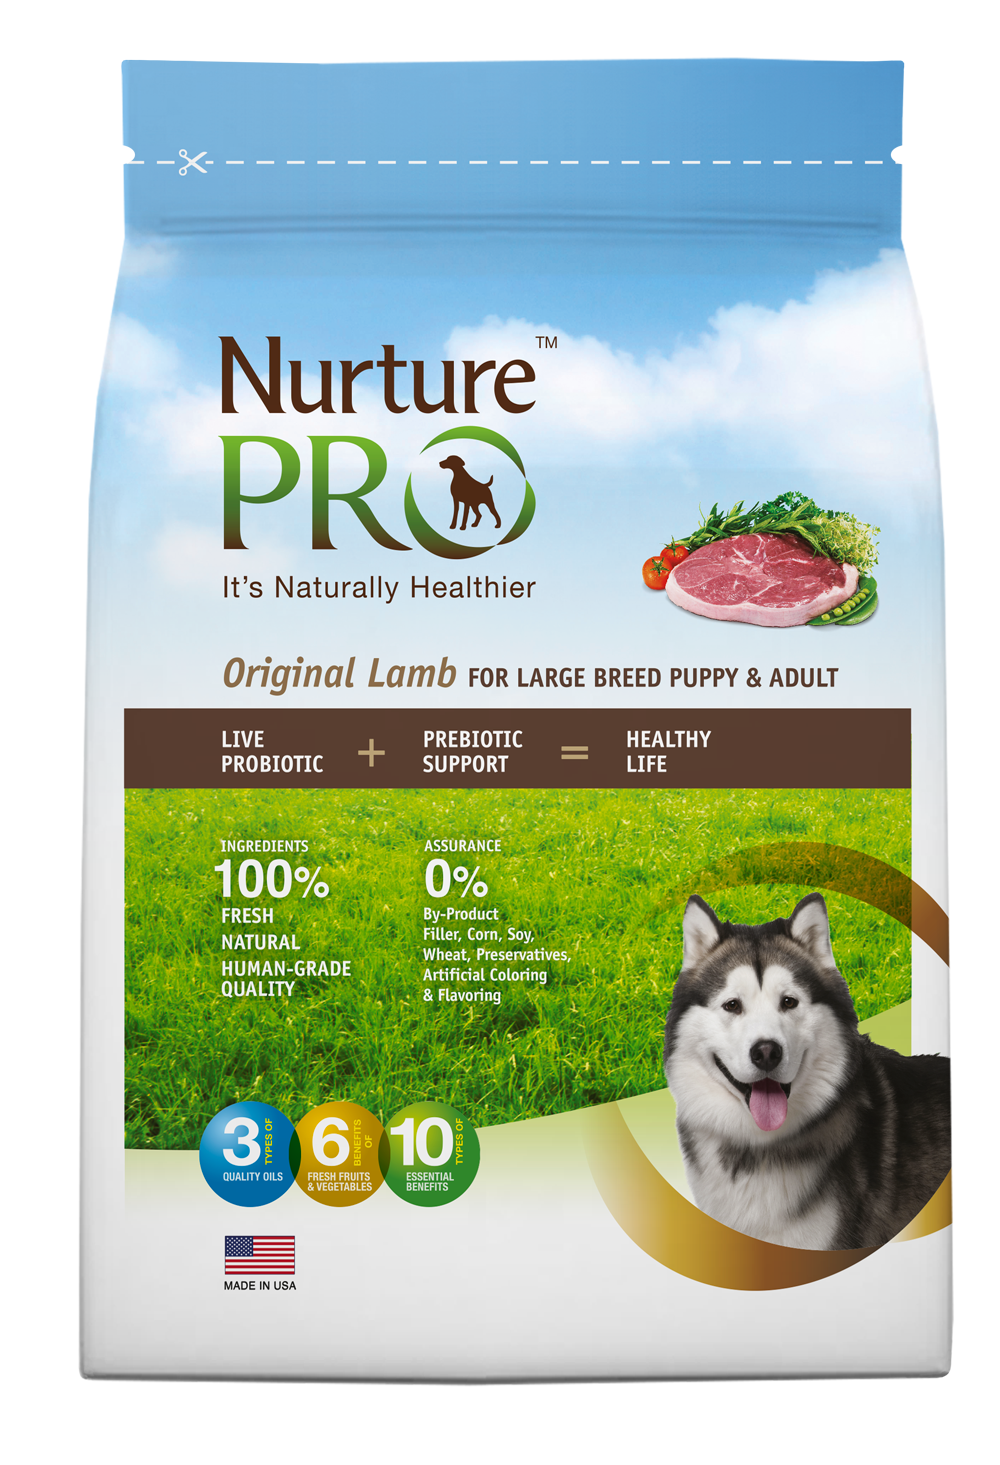 Free Nurture Pro Dog and Cat food sample